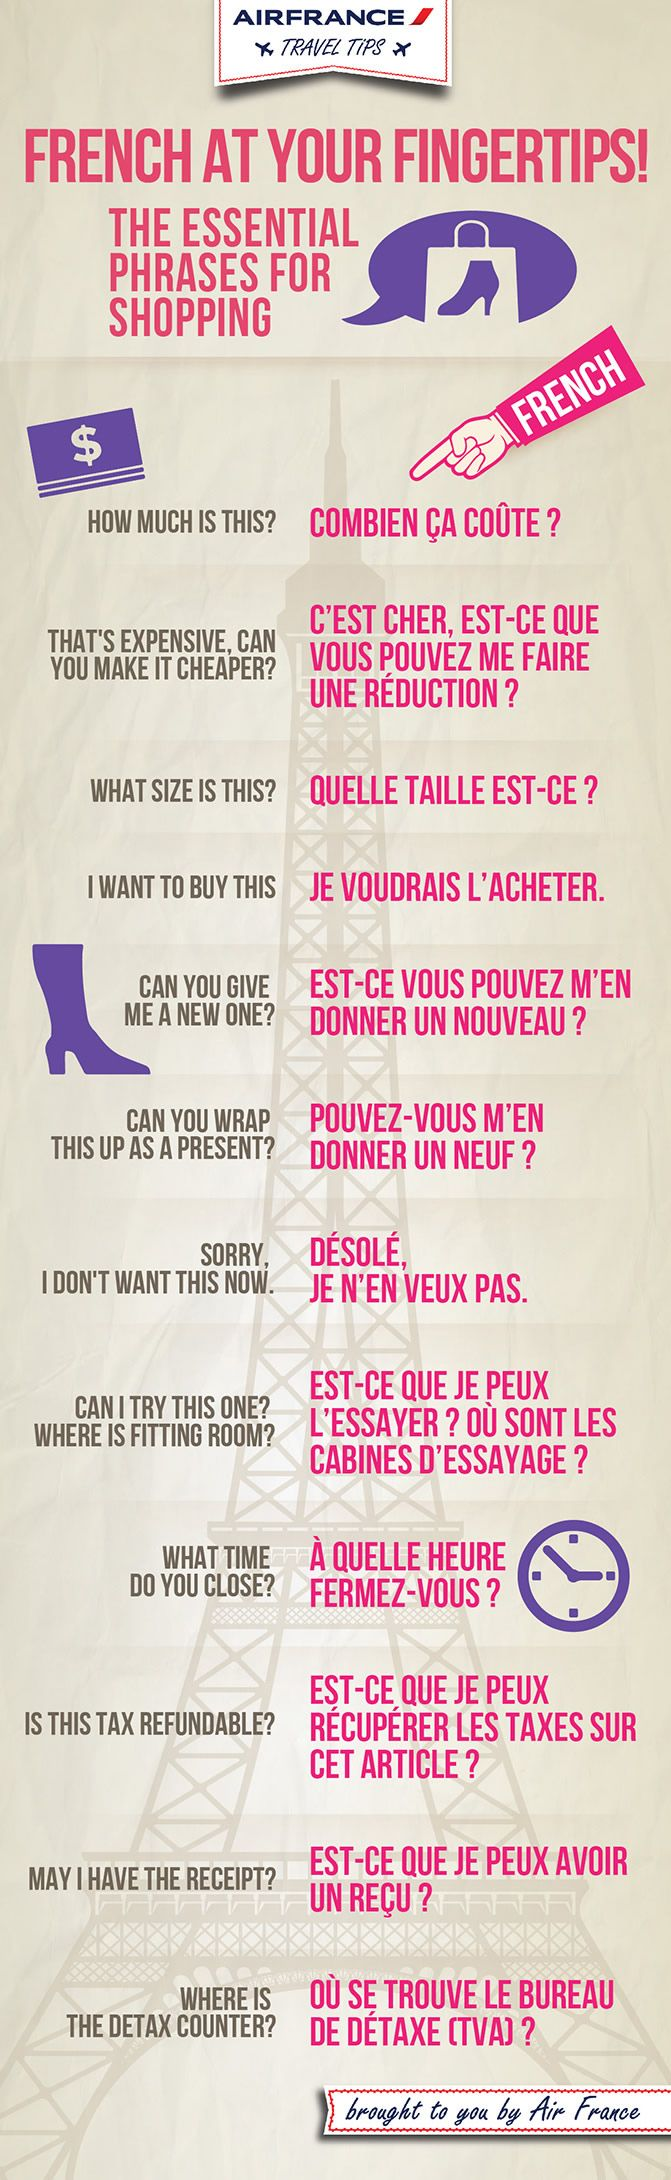 French phrases for shopping.